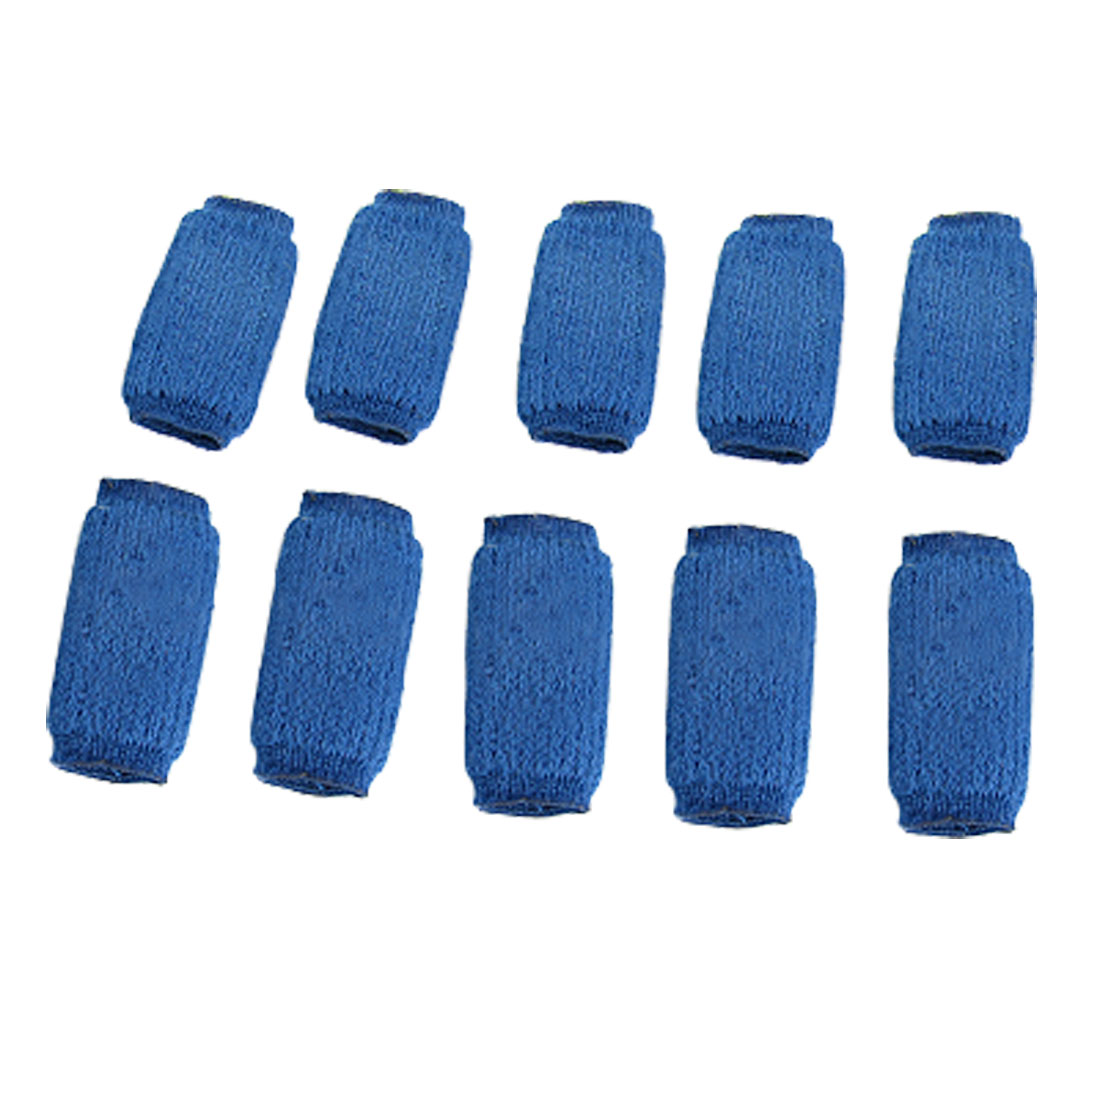 10 Pcs Volleyball Elastic Blue Finger Sleeve Protector